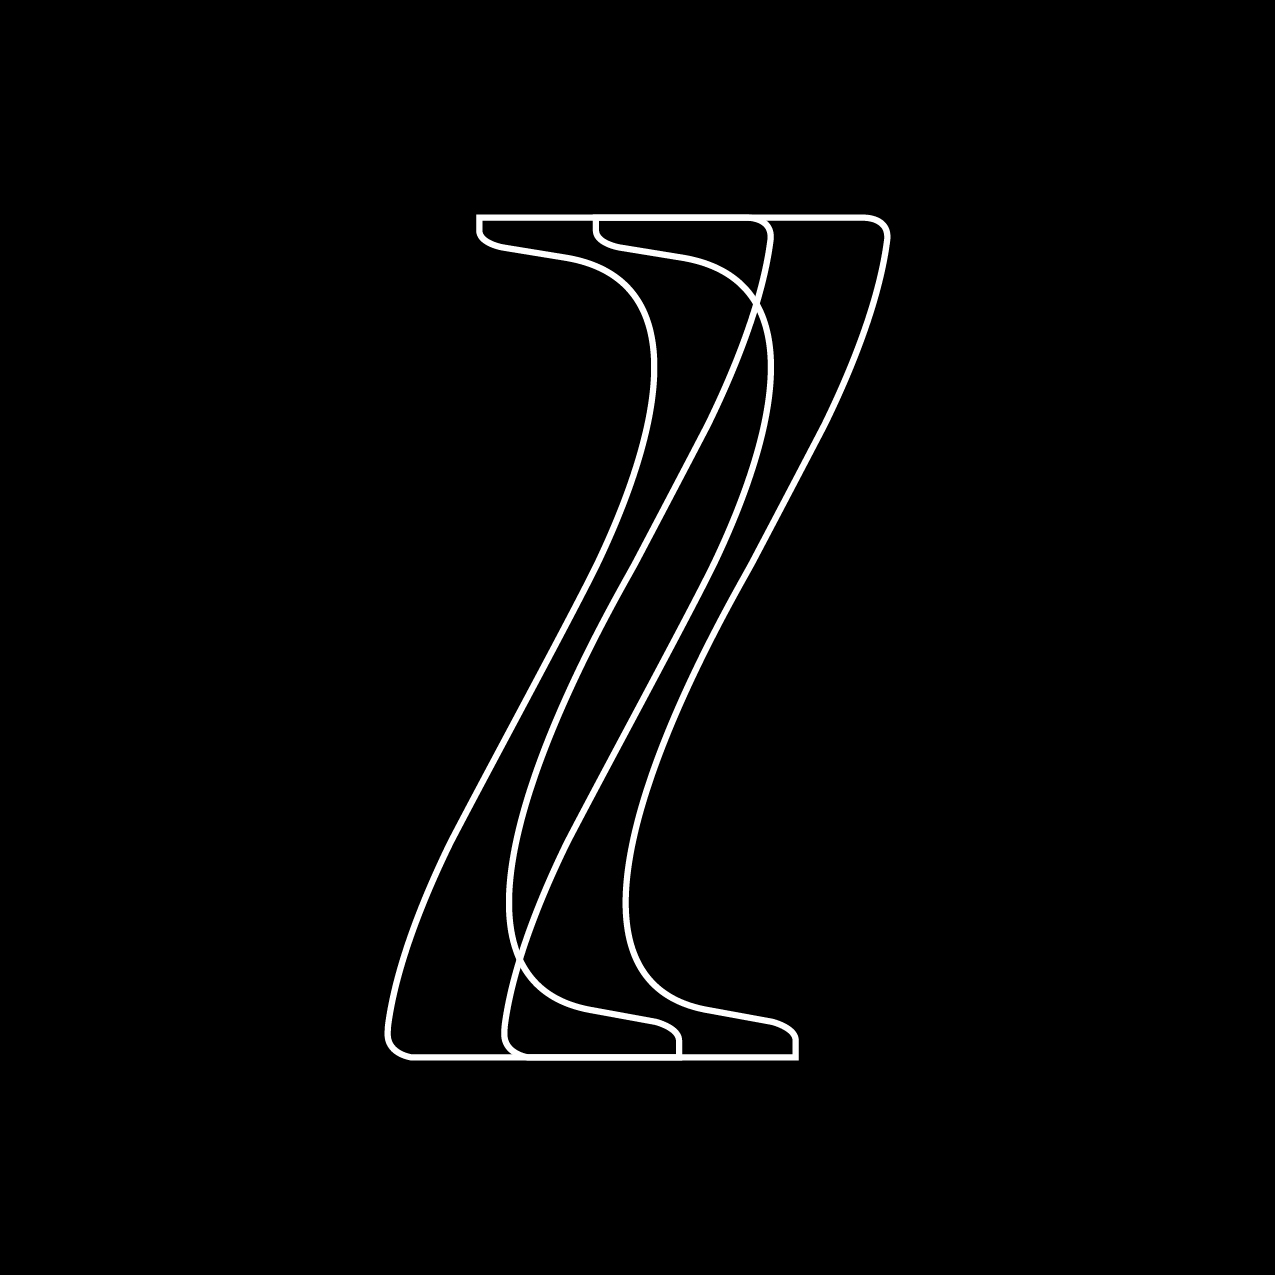 Letter Z12 Design by Furia